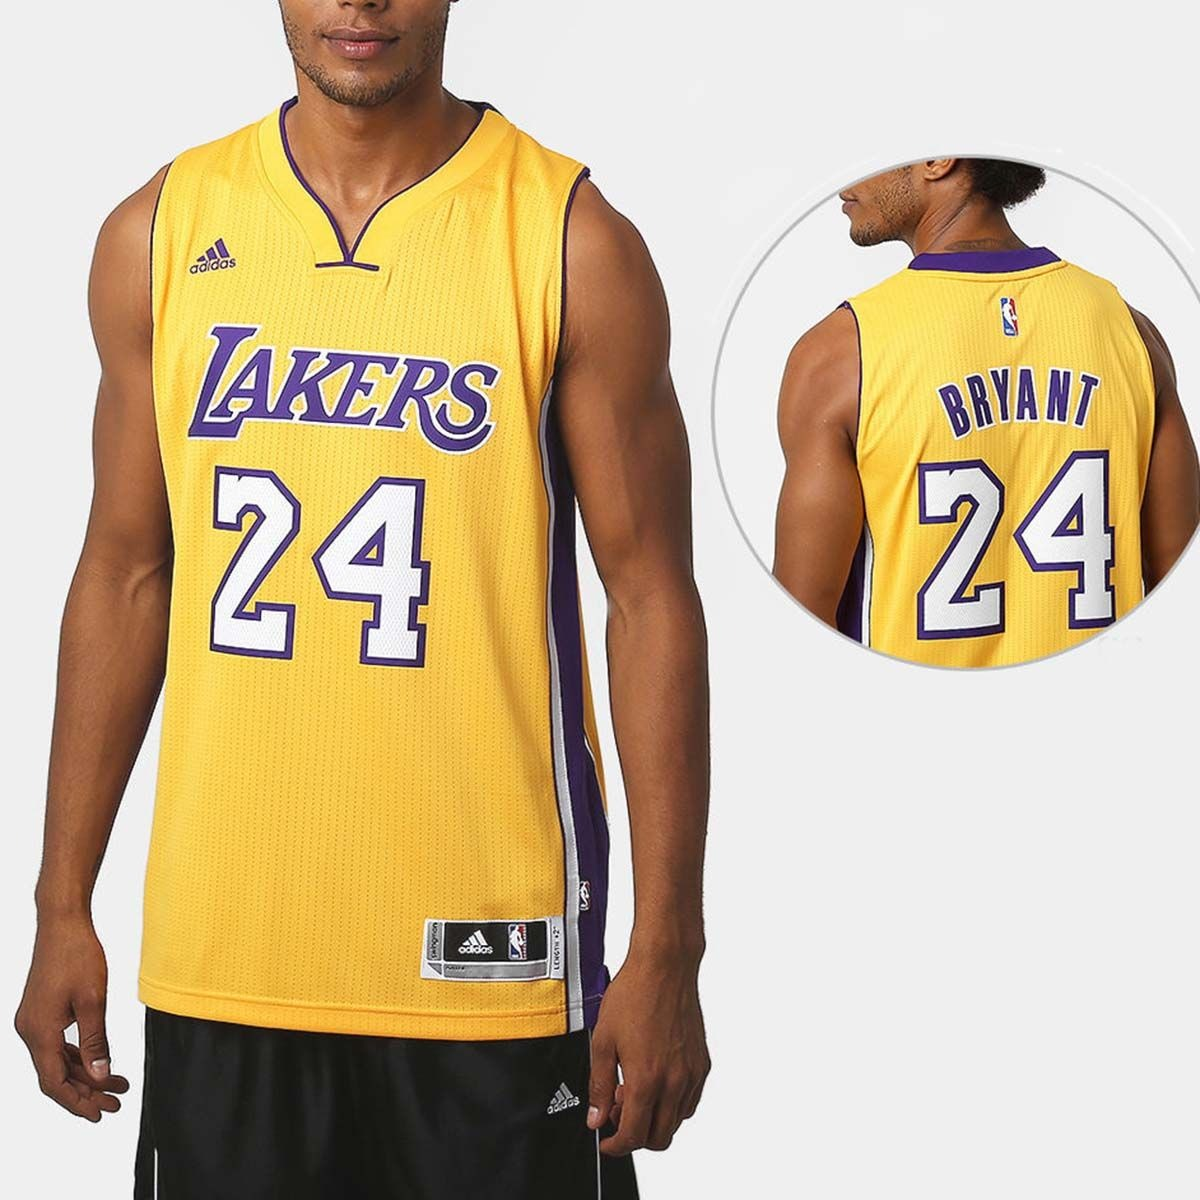 48a8c915b camisa regata adidas nba swingman los angeles lakers orig+nf. Carregando  zoom.